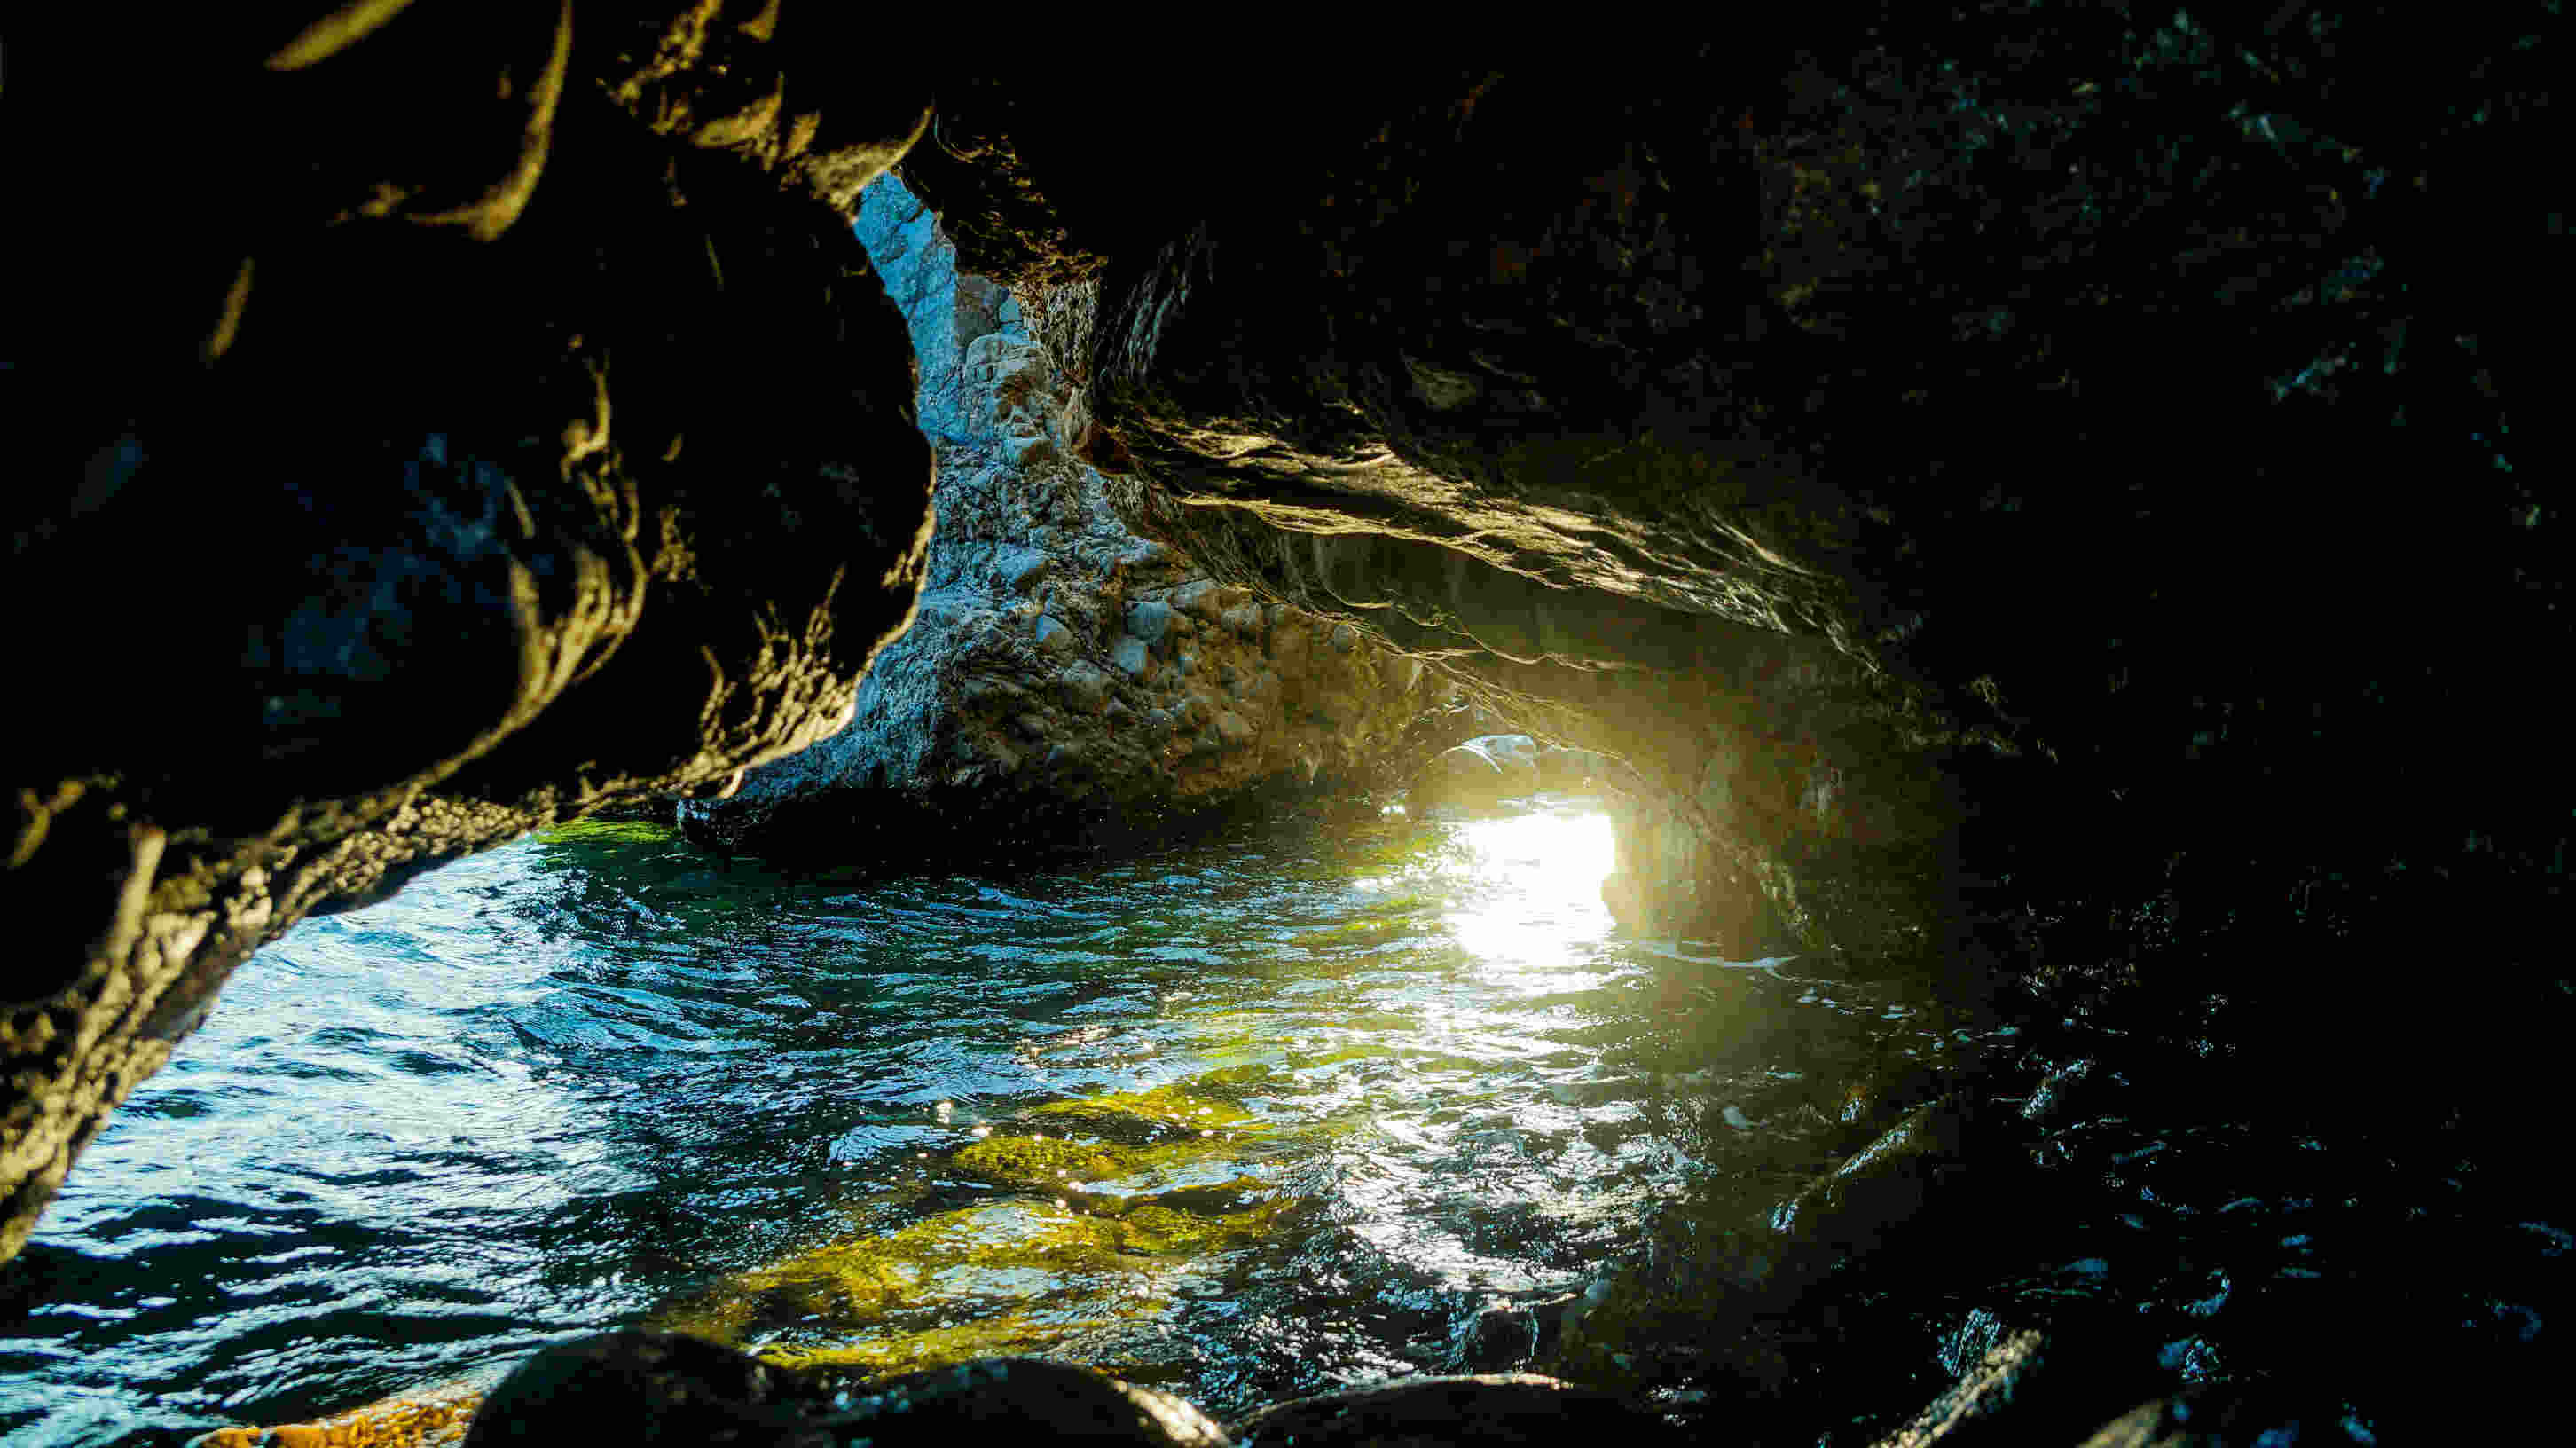 dark cave with sea flowing